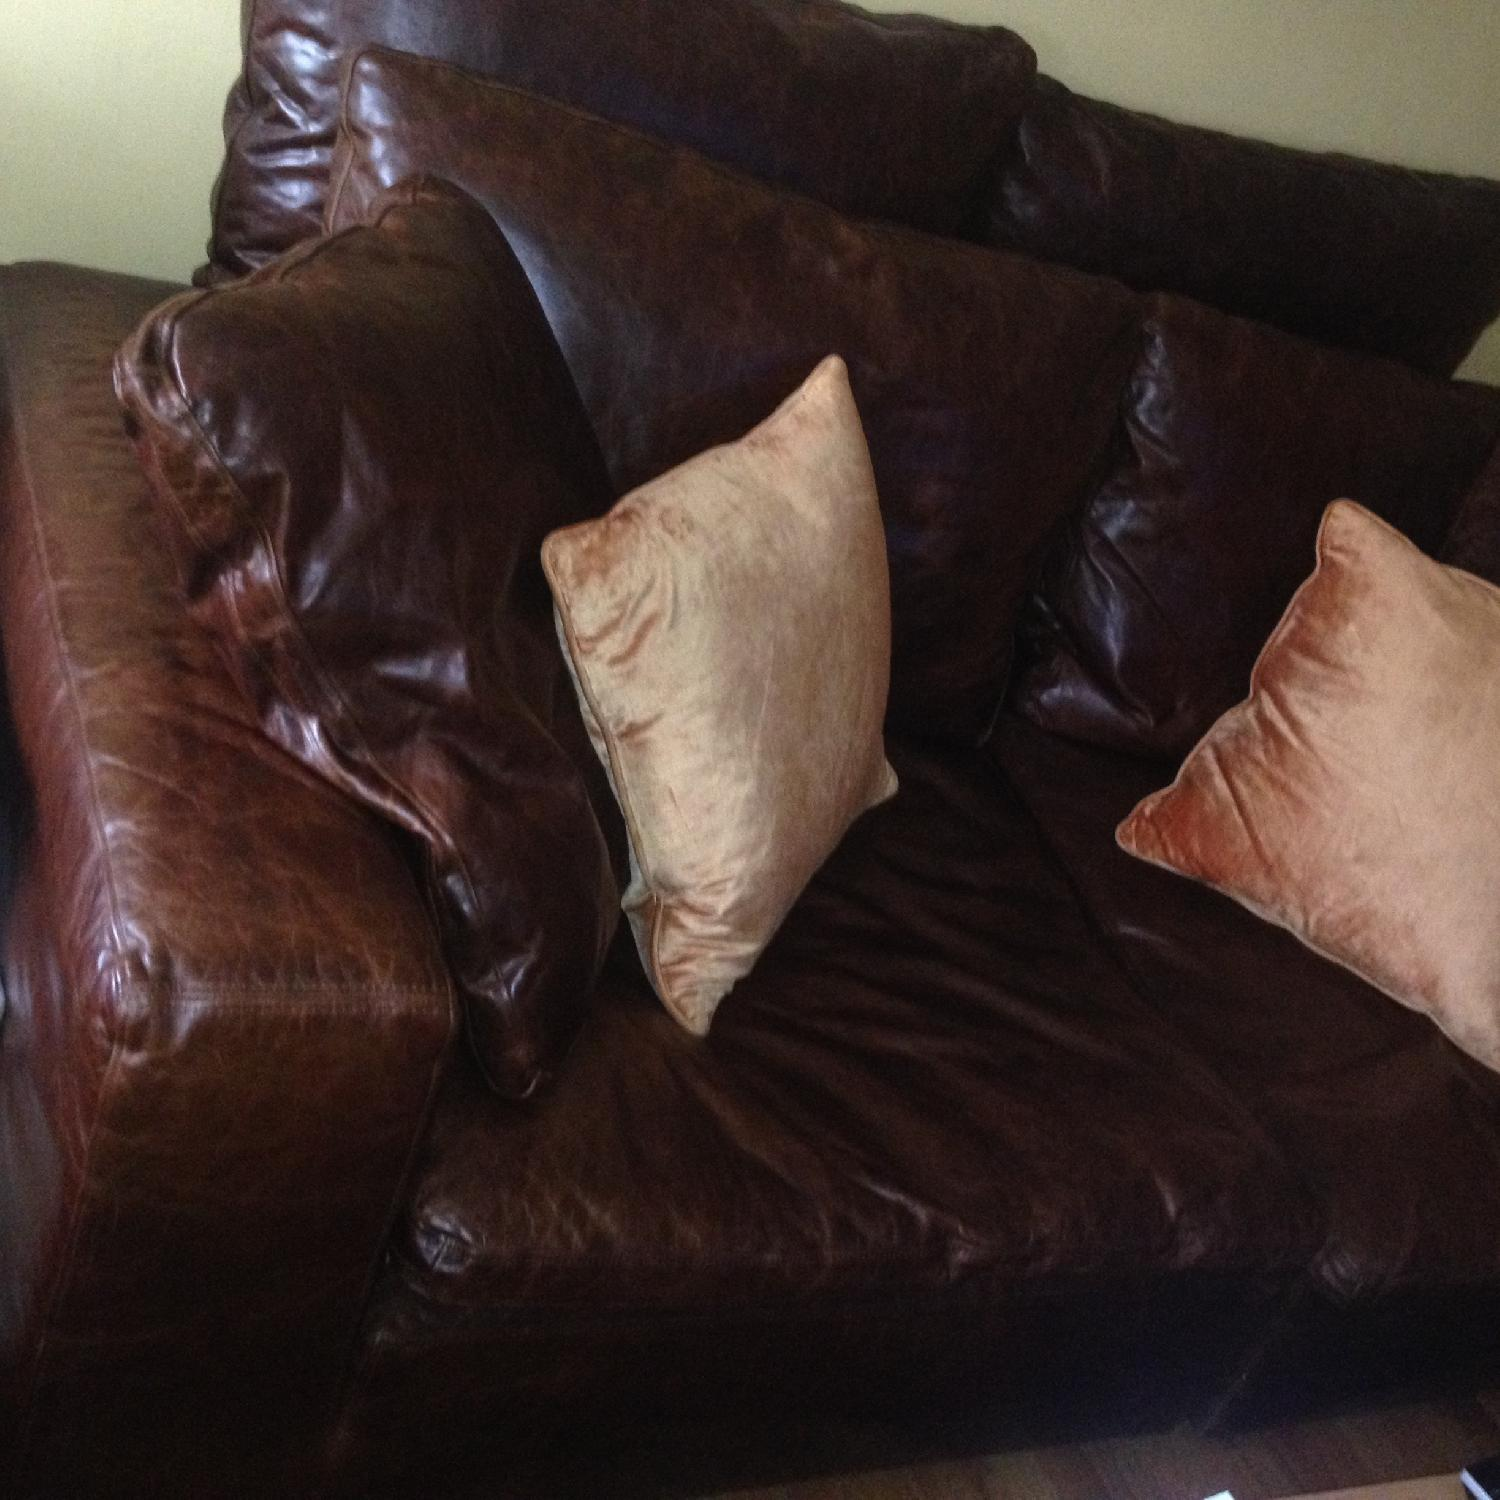 Restoration Hardware Cloud 2 Piece Sectional Sofa in Brompton Cocoa - image-1